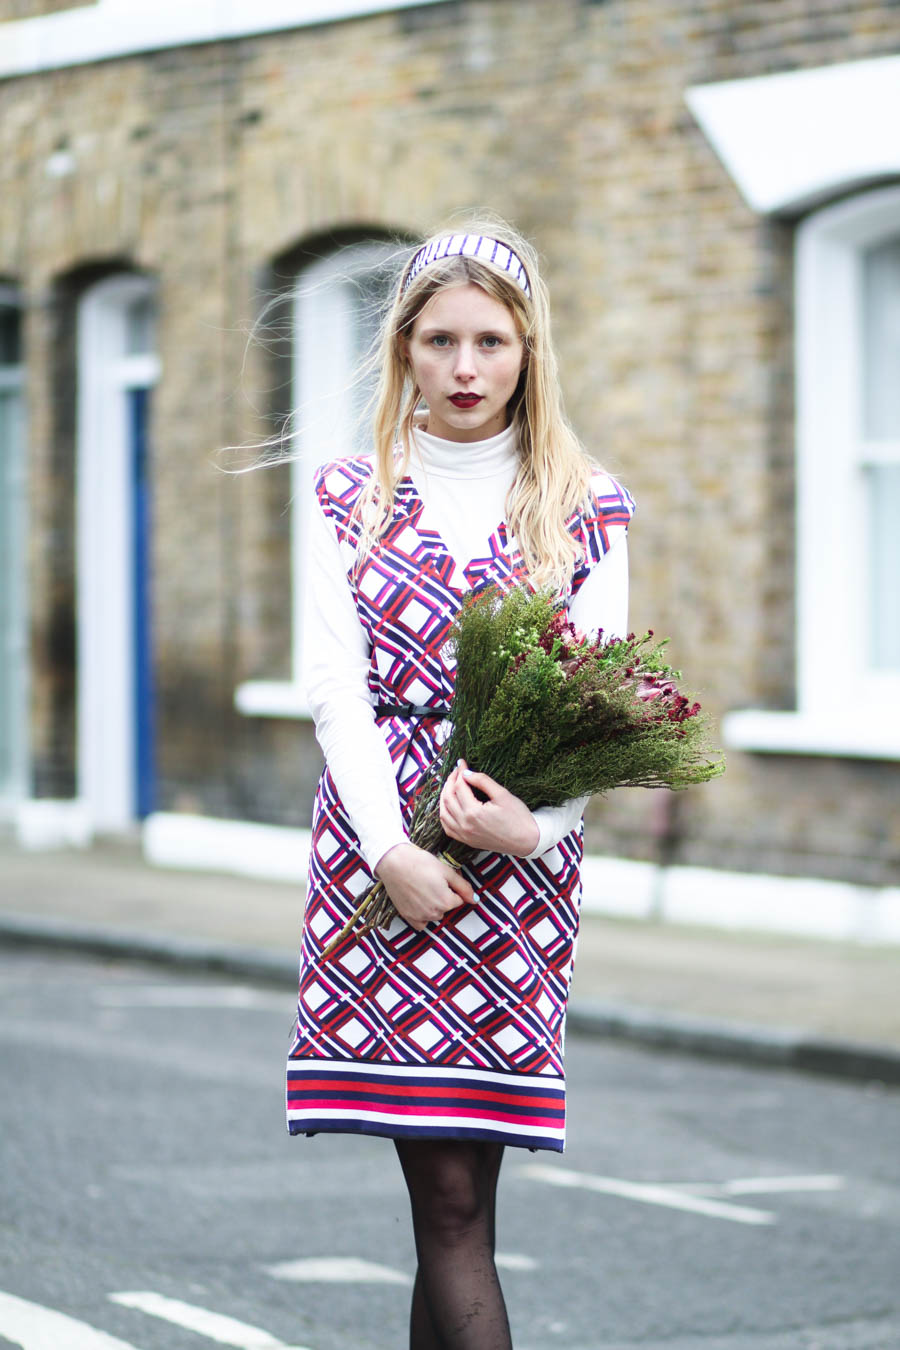 outfit february nemesis babe marie my jensen danish blogger london columbia road flower market 2nd day outfit-4